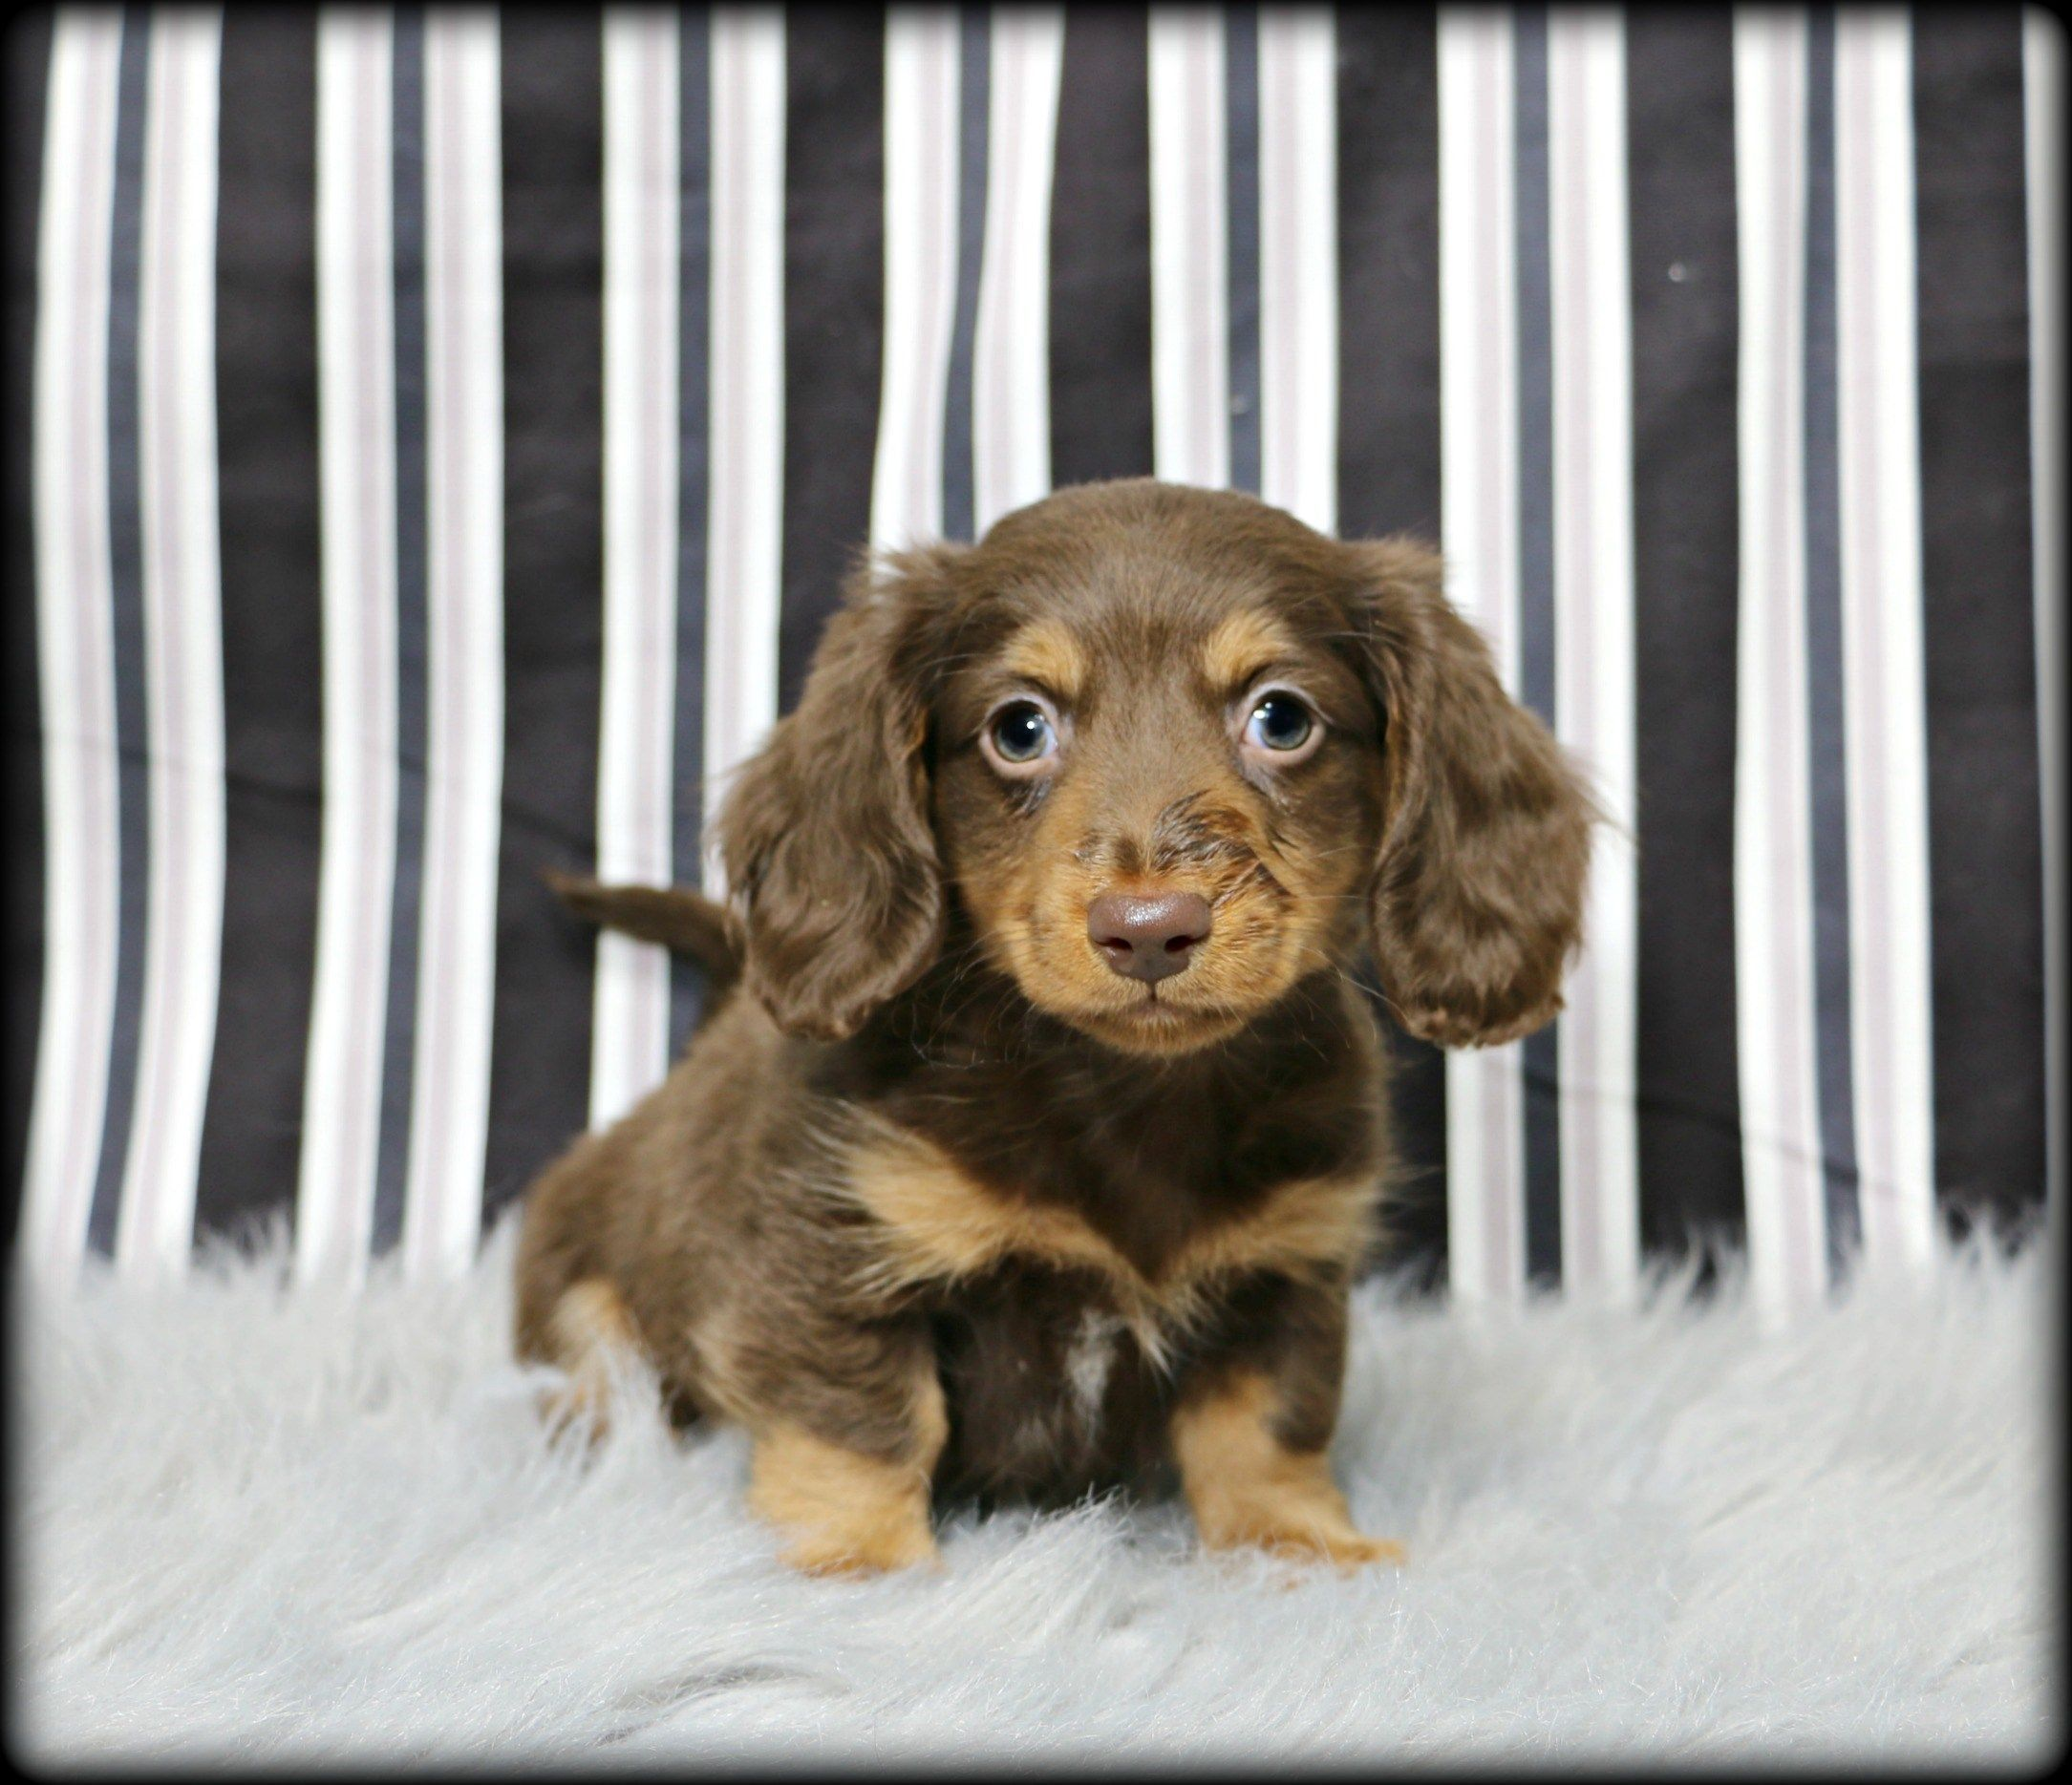 Petland Overland Park Has Dachshund Puppies For Sale Check Out All Our Available Puppies Dachshu Puppies For Sale Puppy Friends Dachshund Puppies For Sale